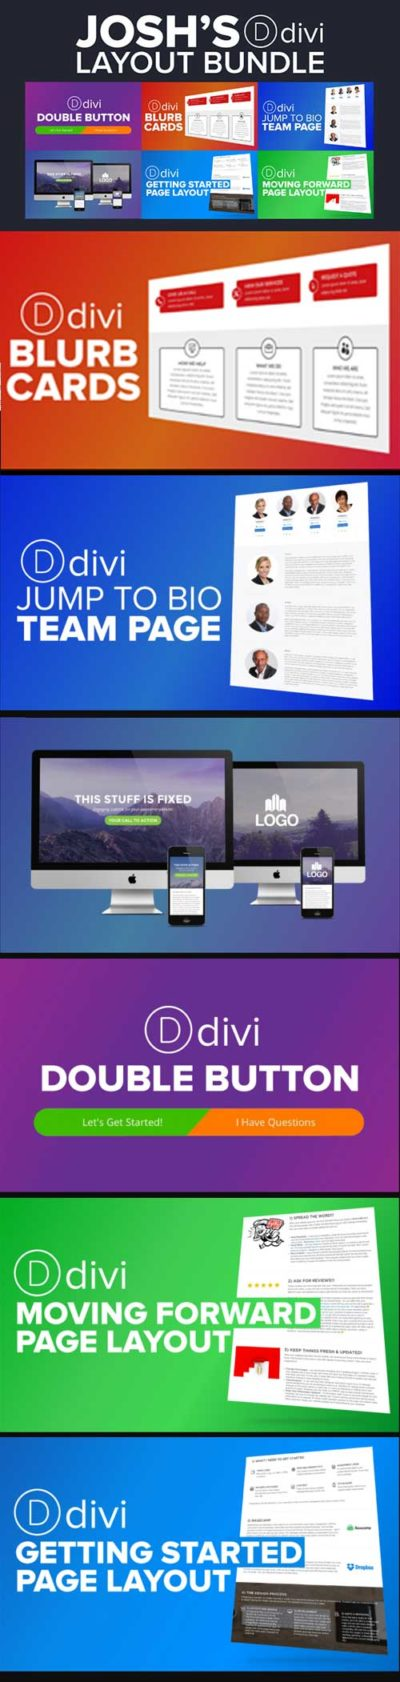 josh halls Divi layout bundle